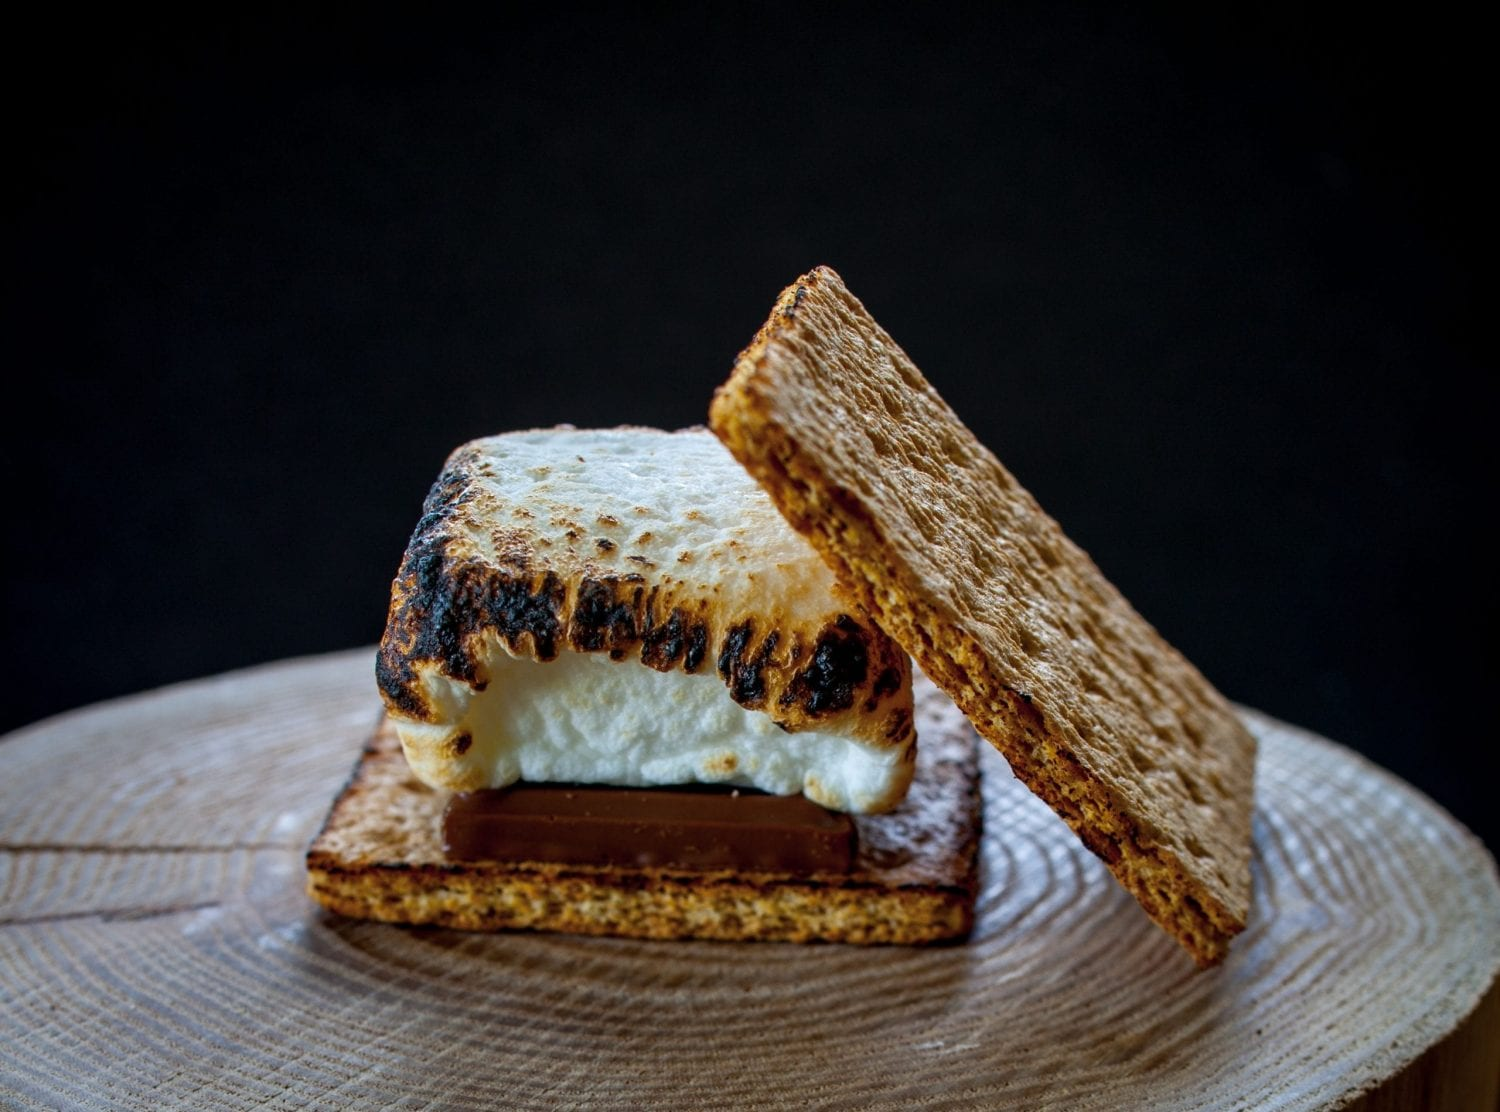 One pot smore on a log with a black background